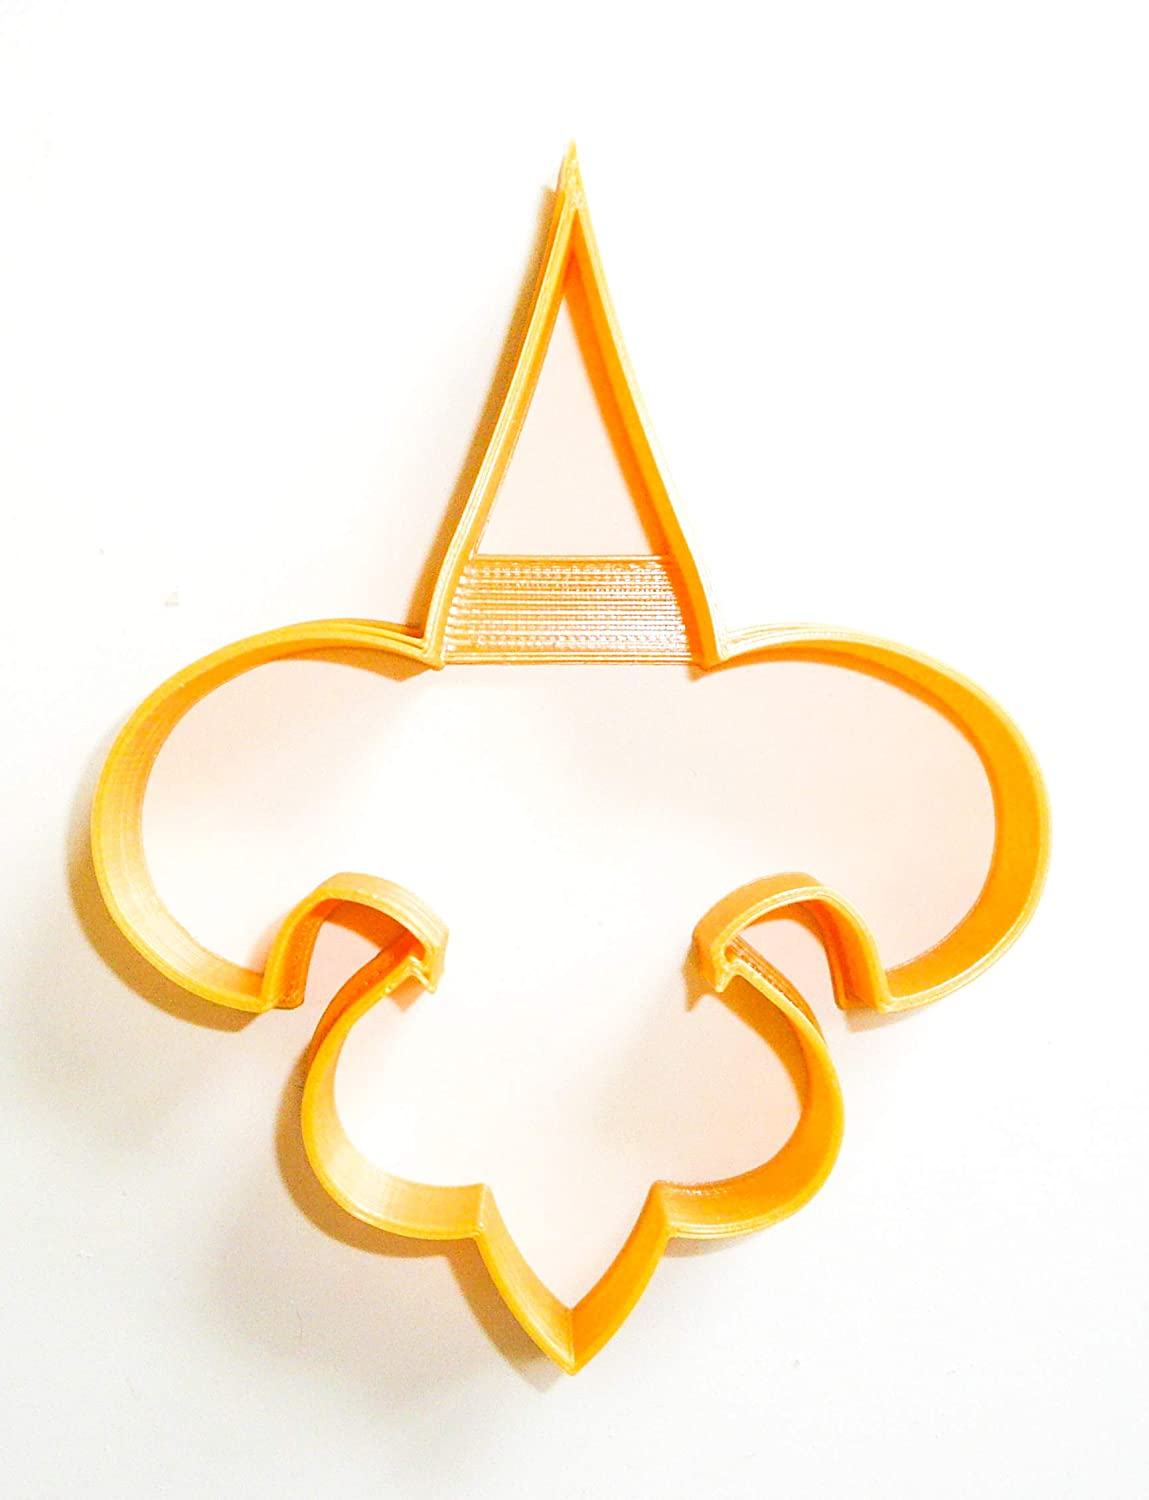 NEW ORLEANS SAINTS NFL FOOTBALL LOGO SPECIAL OCCASION FONDANT STAMP CUTTER OR CUPCAKE TOPPER SIZE 1.75